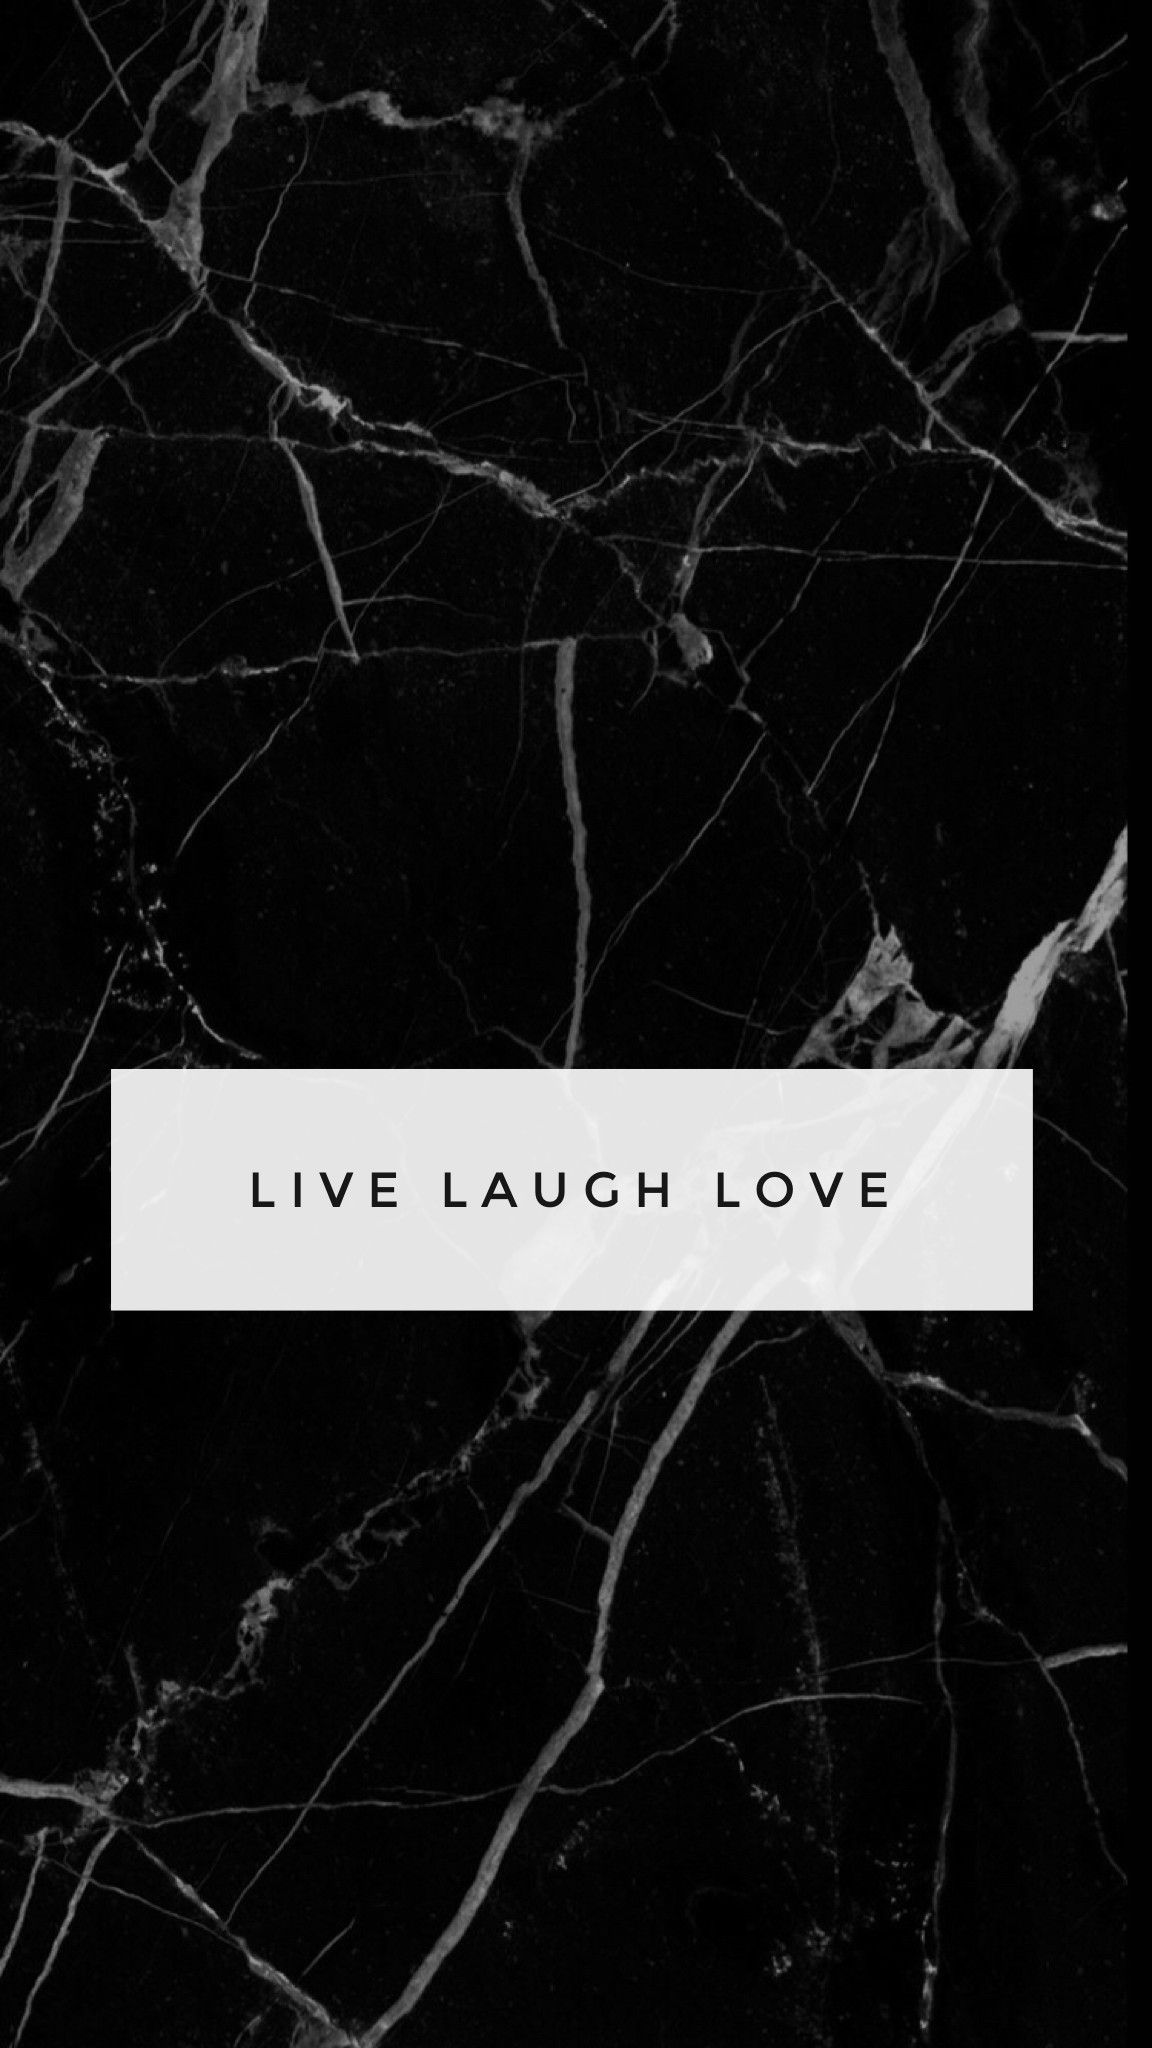 Black And White Aesthetic Phone Wallpapers Top Free Black And White Aesthetic Phone Backgrounds Wallpaperaccess